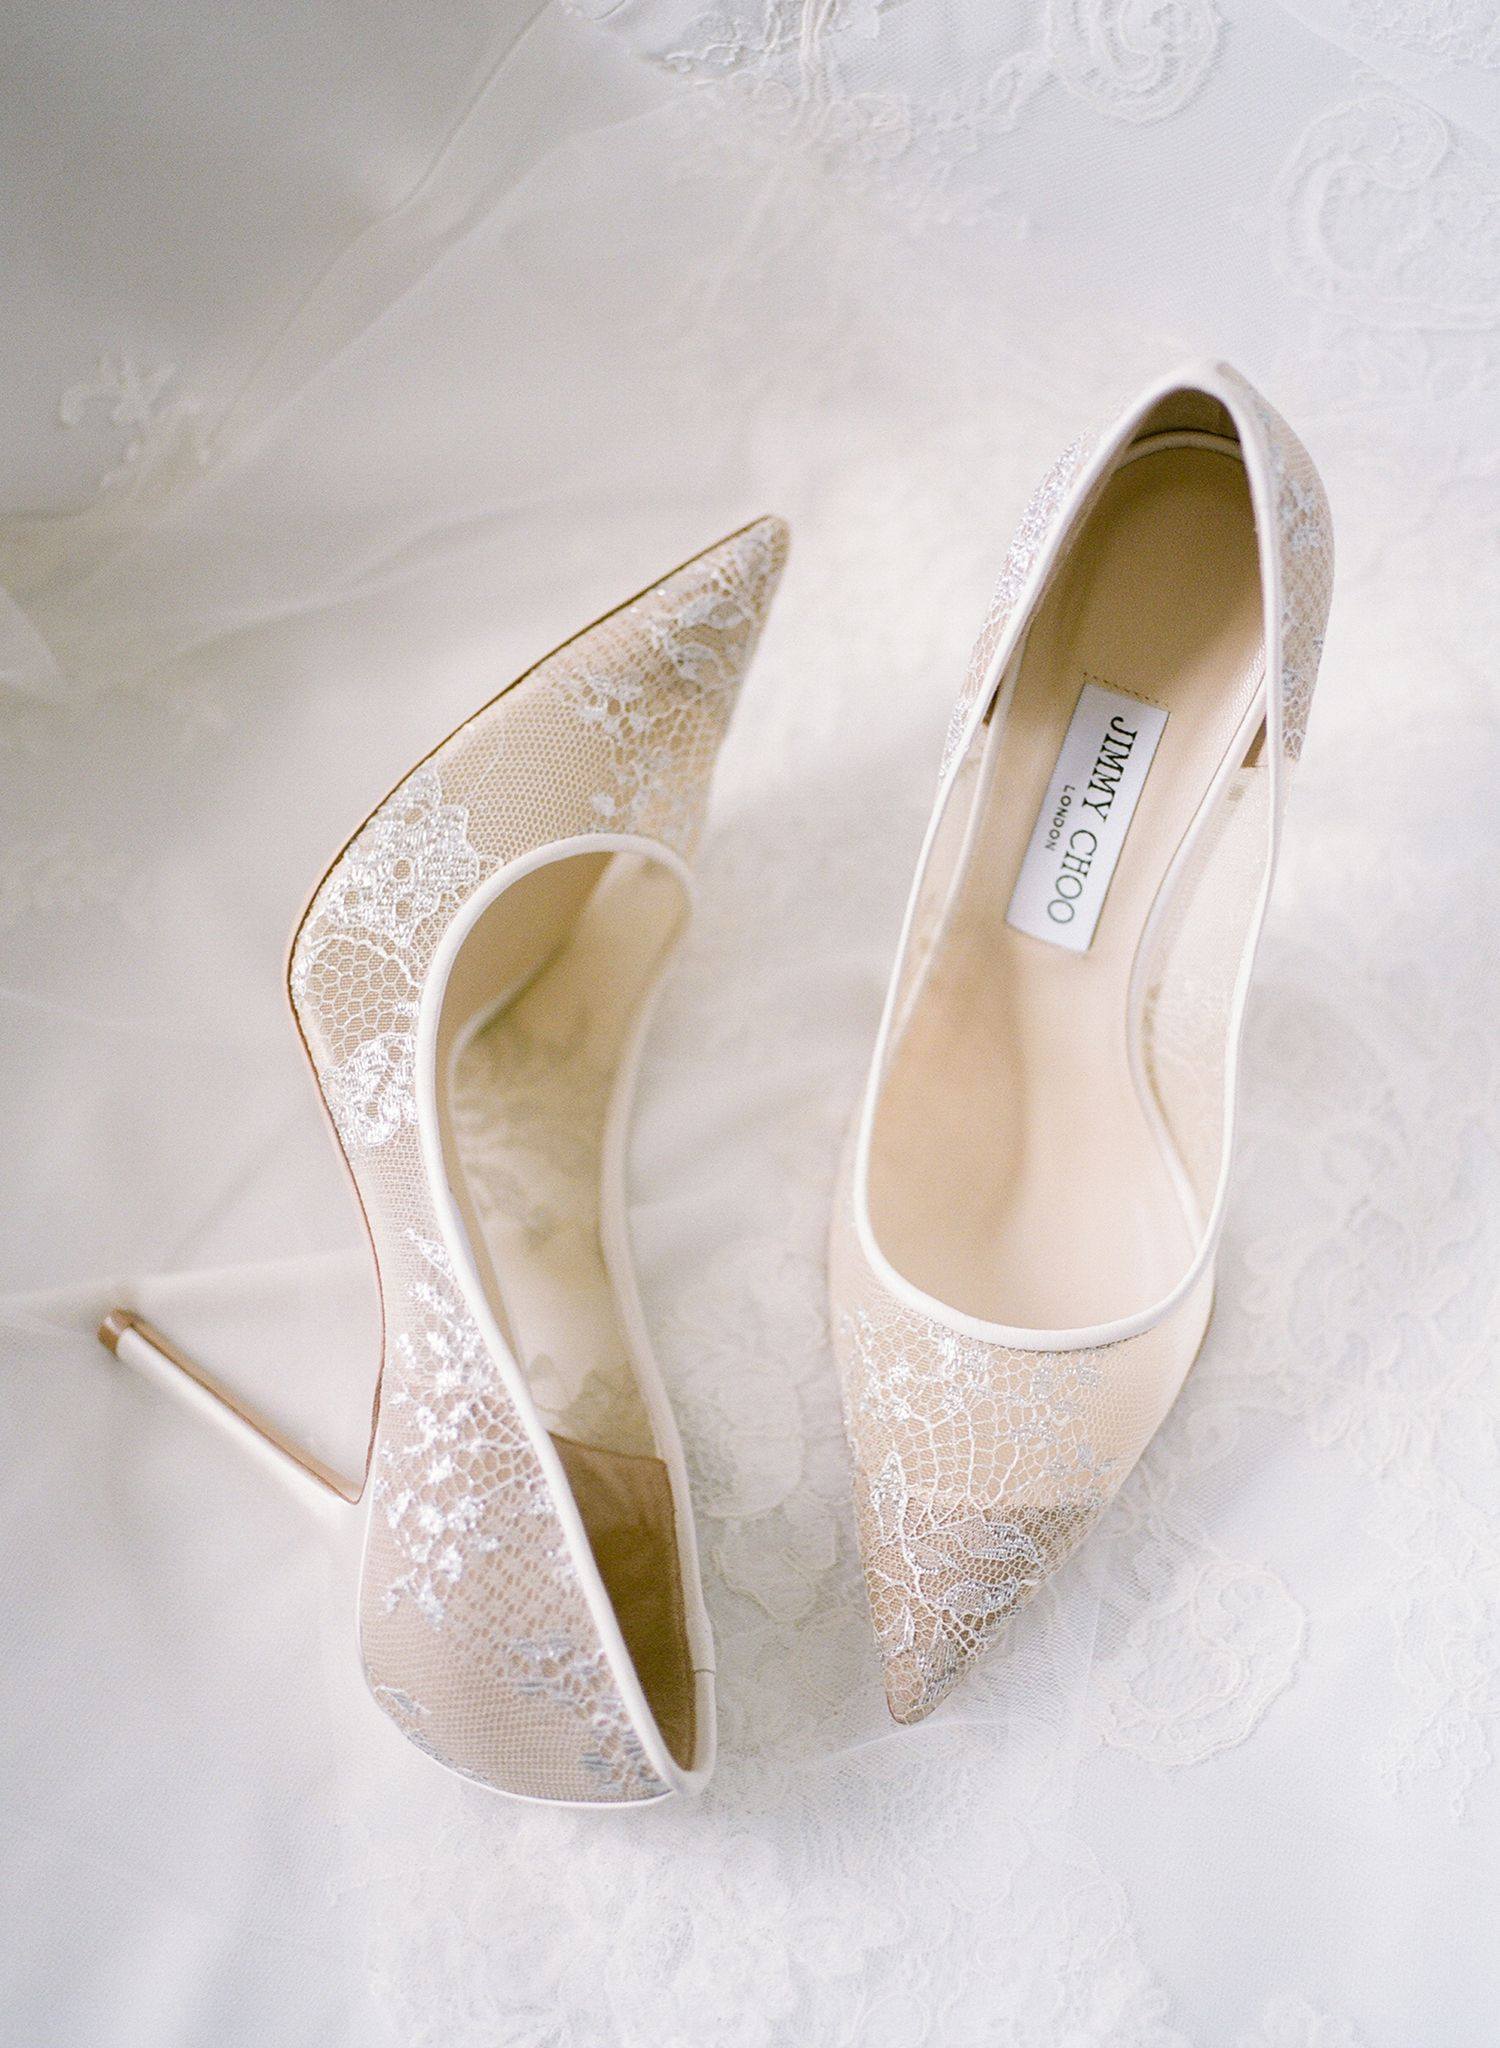 The Best Bridal Shoes Perfect Wedding Shoes Jimmy Choo Wedding Shoes New York Wedding Photographer Stephanie Sun Bridal Shoes Bride Shoes Best Bridal Shoes